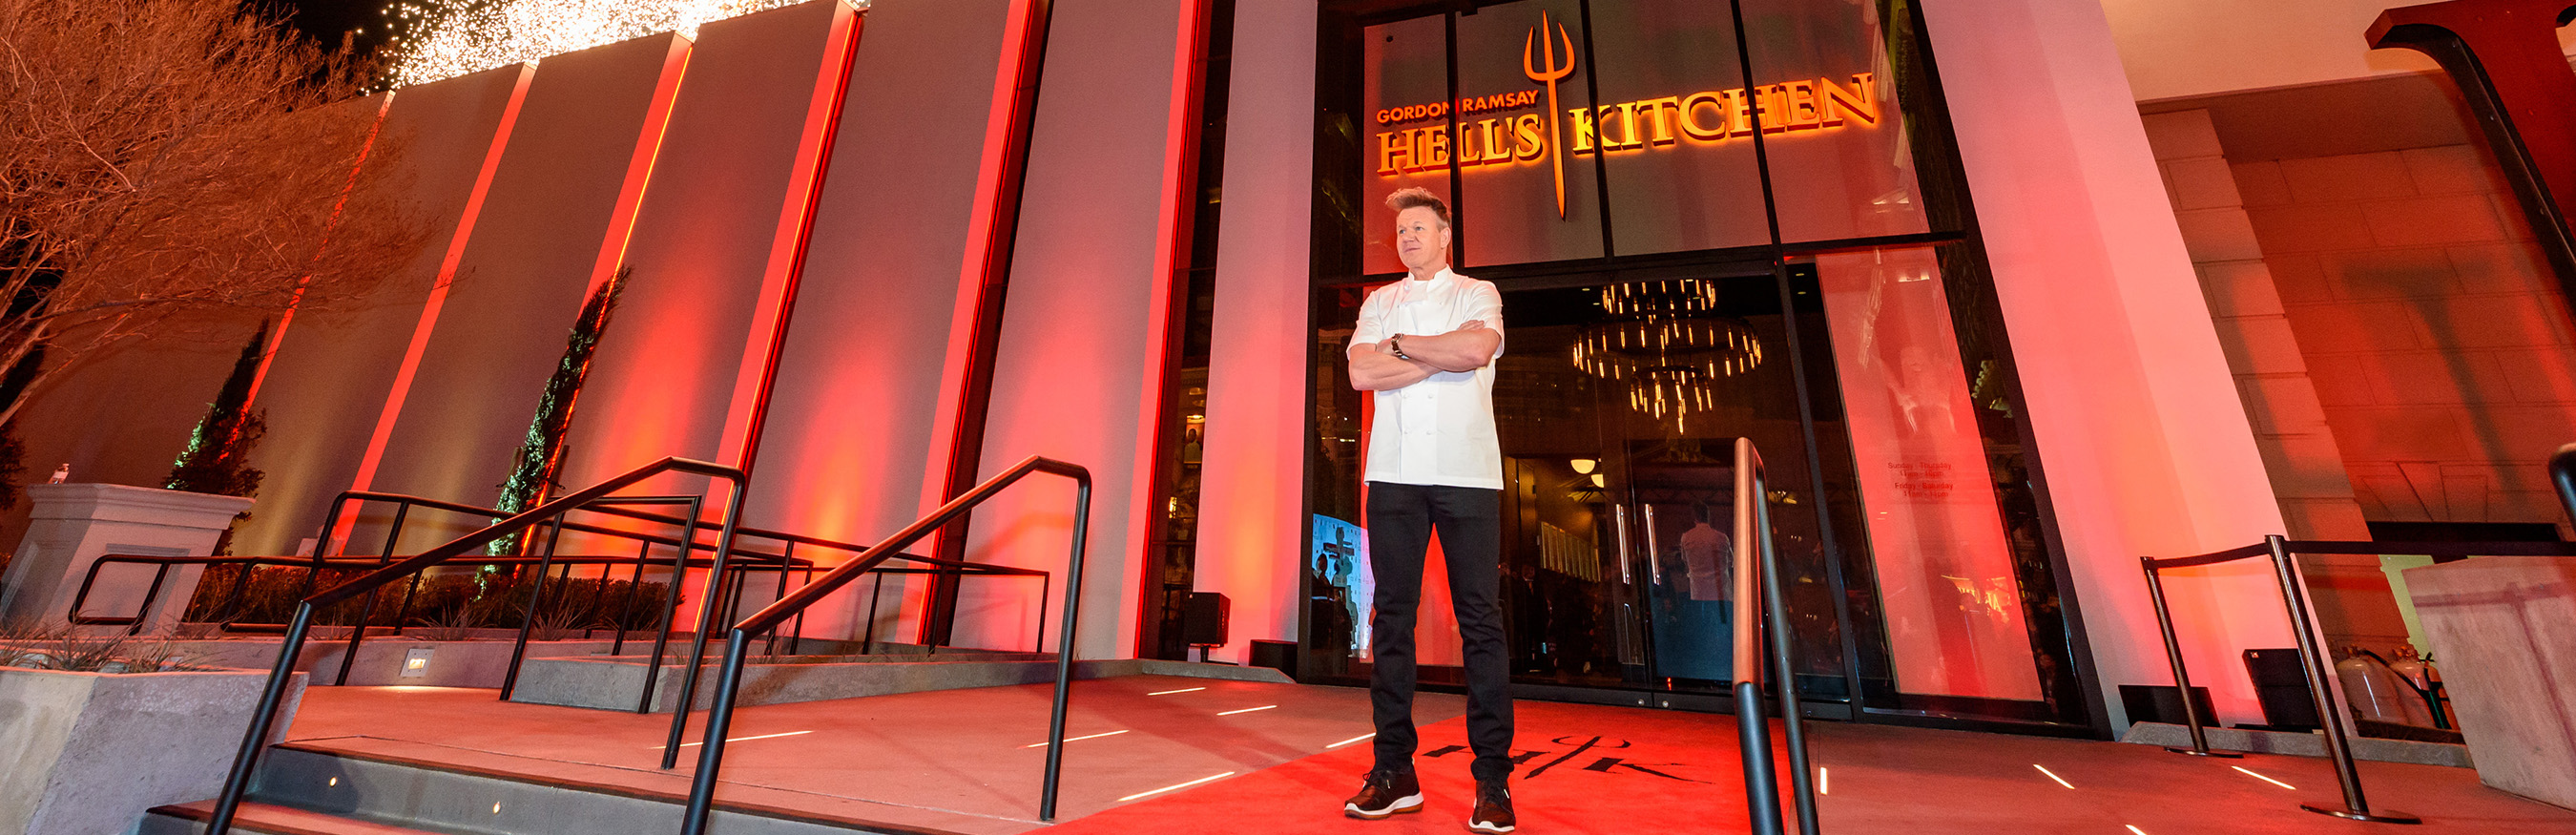 Hell S Kitchen Las Vegas Reservations